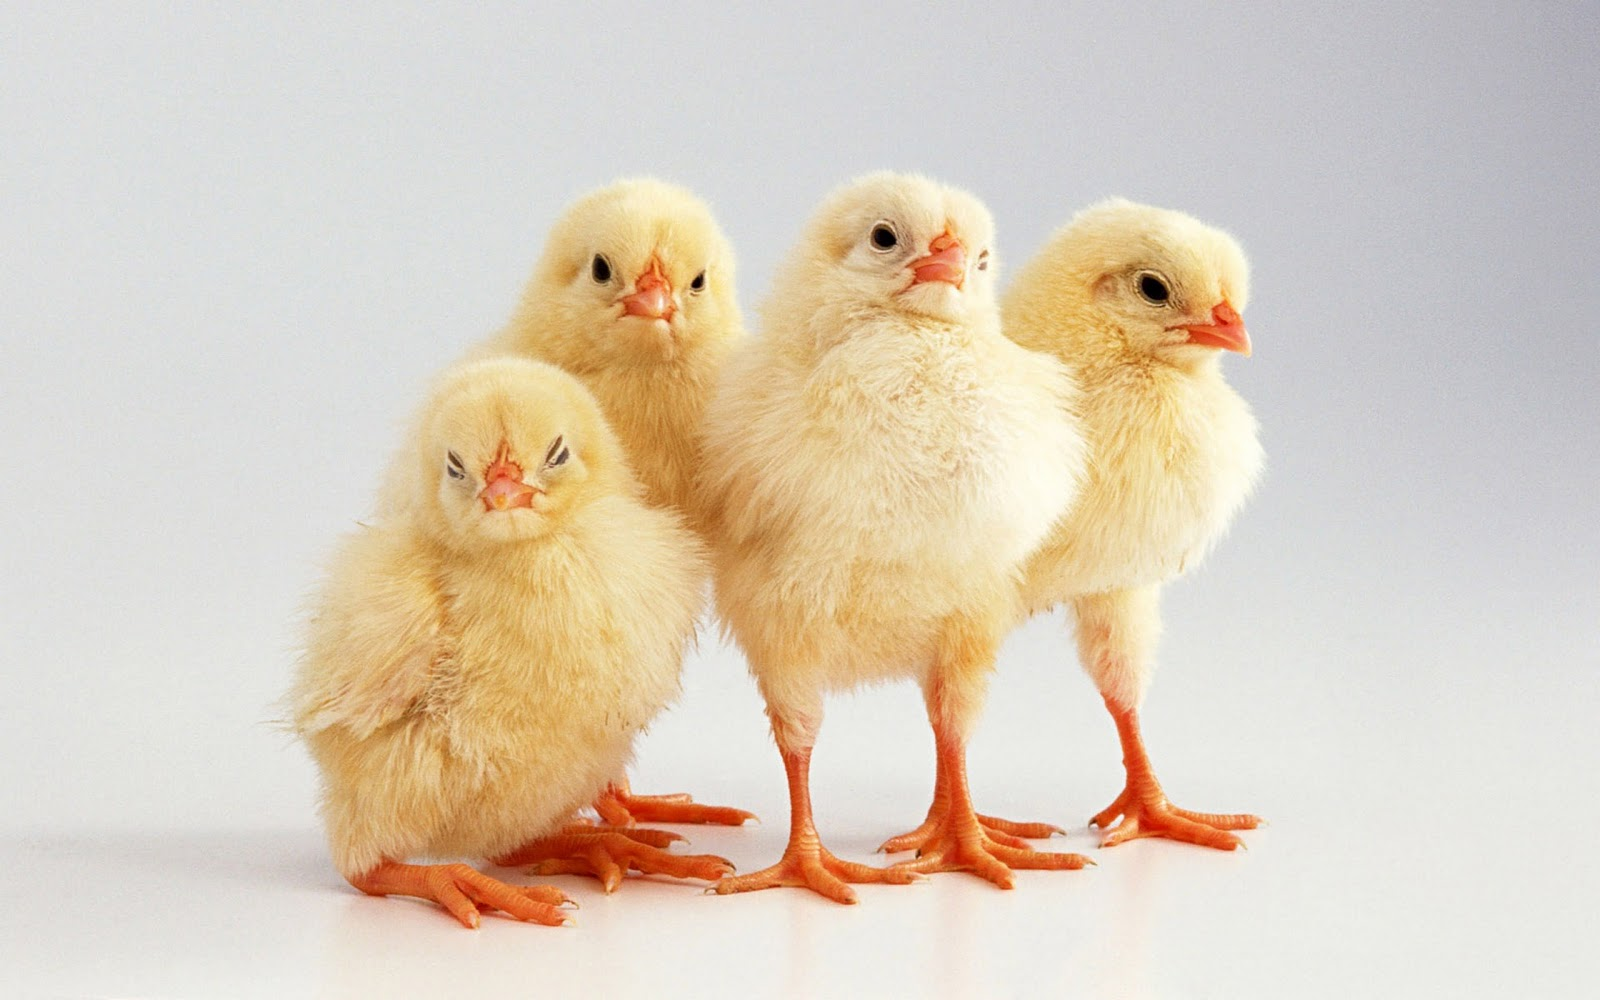 SO: You fucking asshole chickens should have been FRESH!